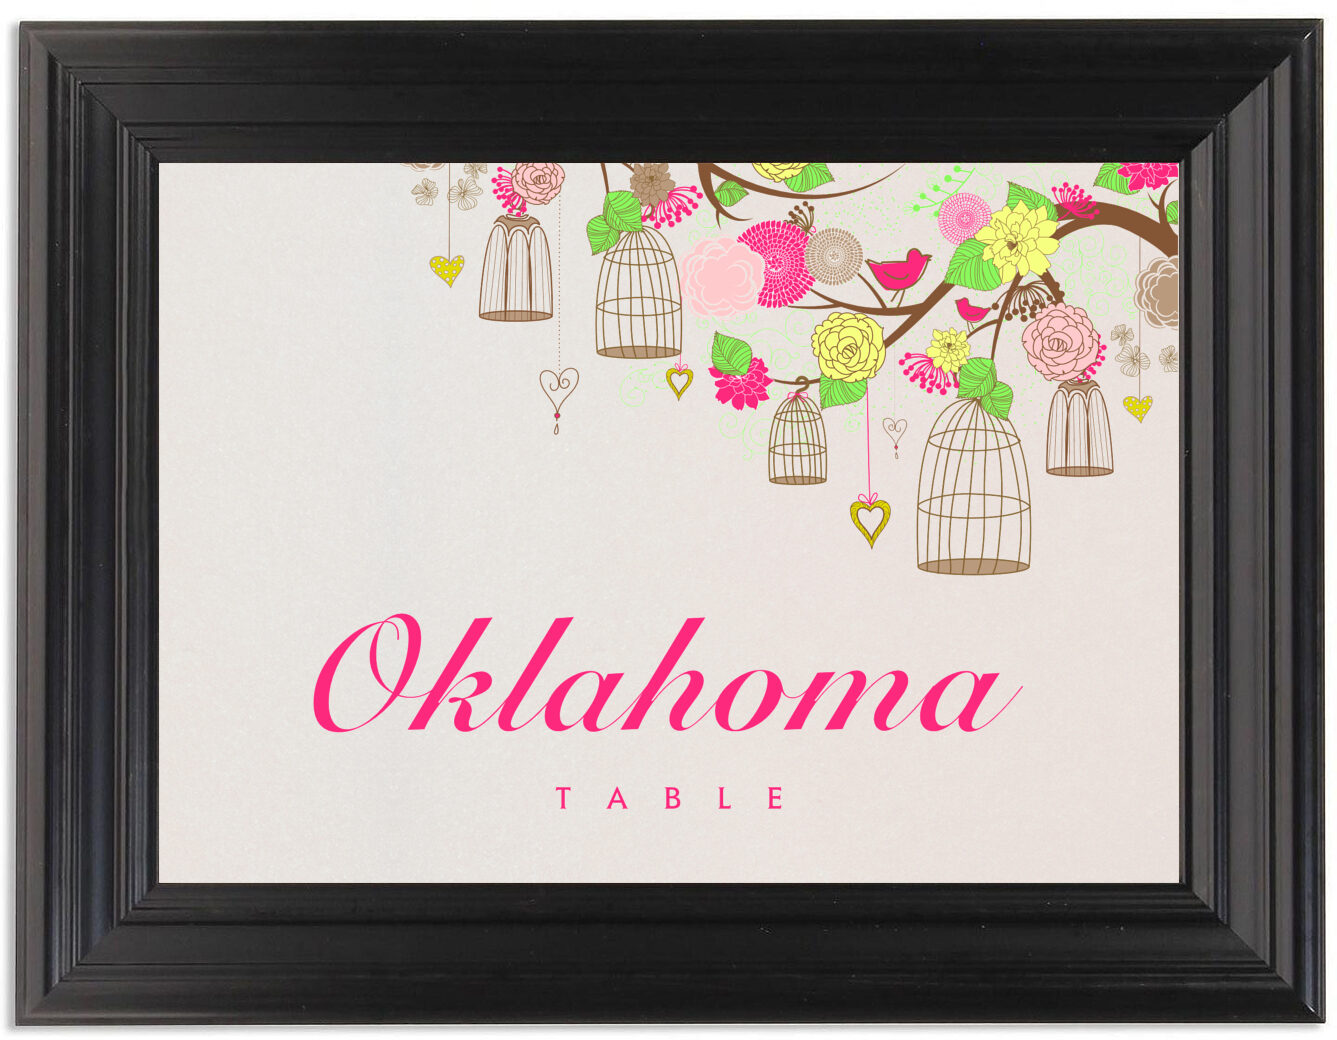 Framed Photograph of Bird Cages Table Names